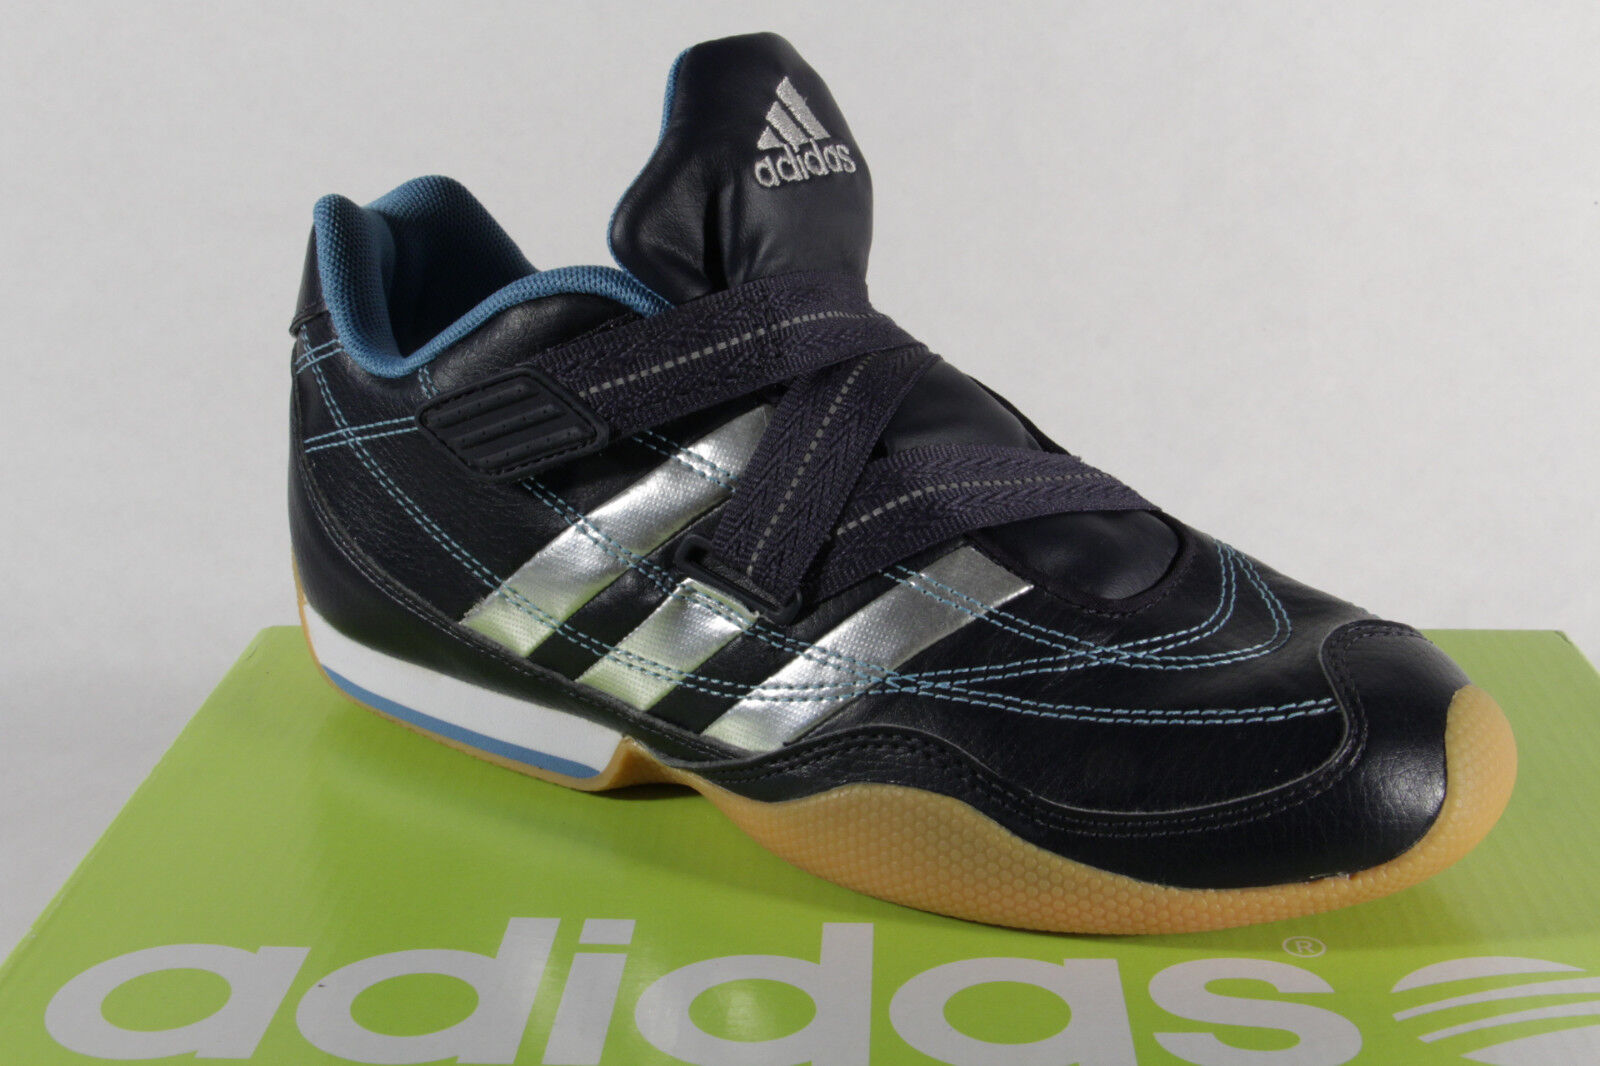 Adidas Magyar bluee Trainers Running shoes Sneaker NEW